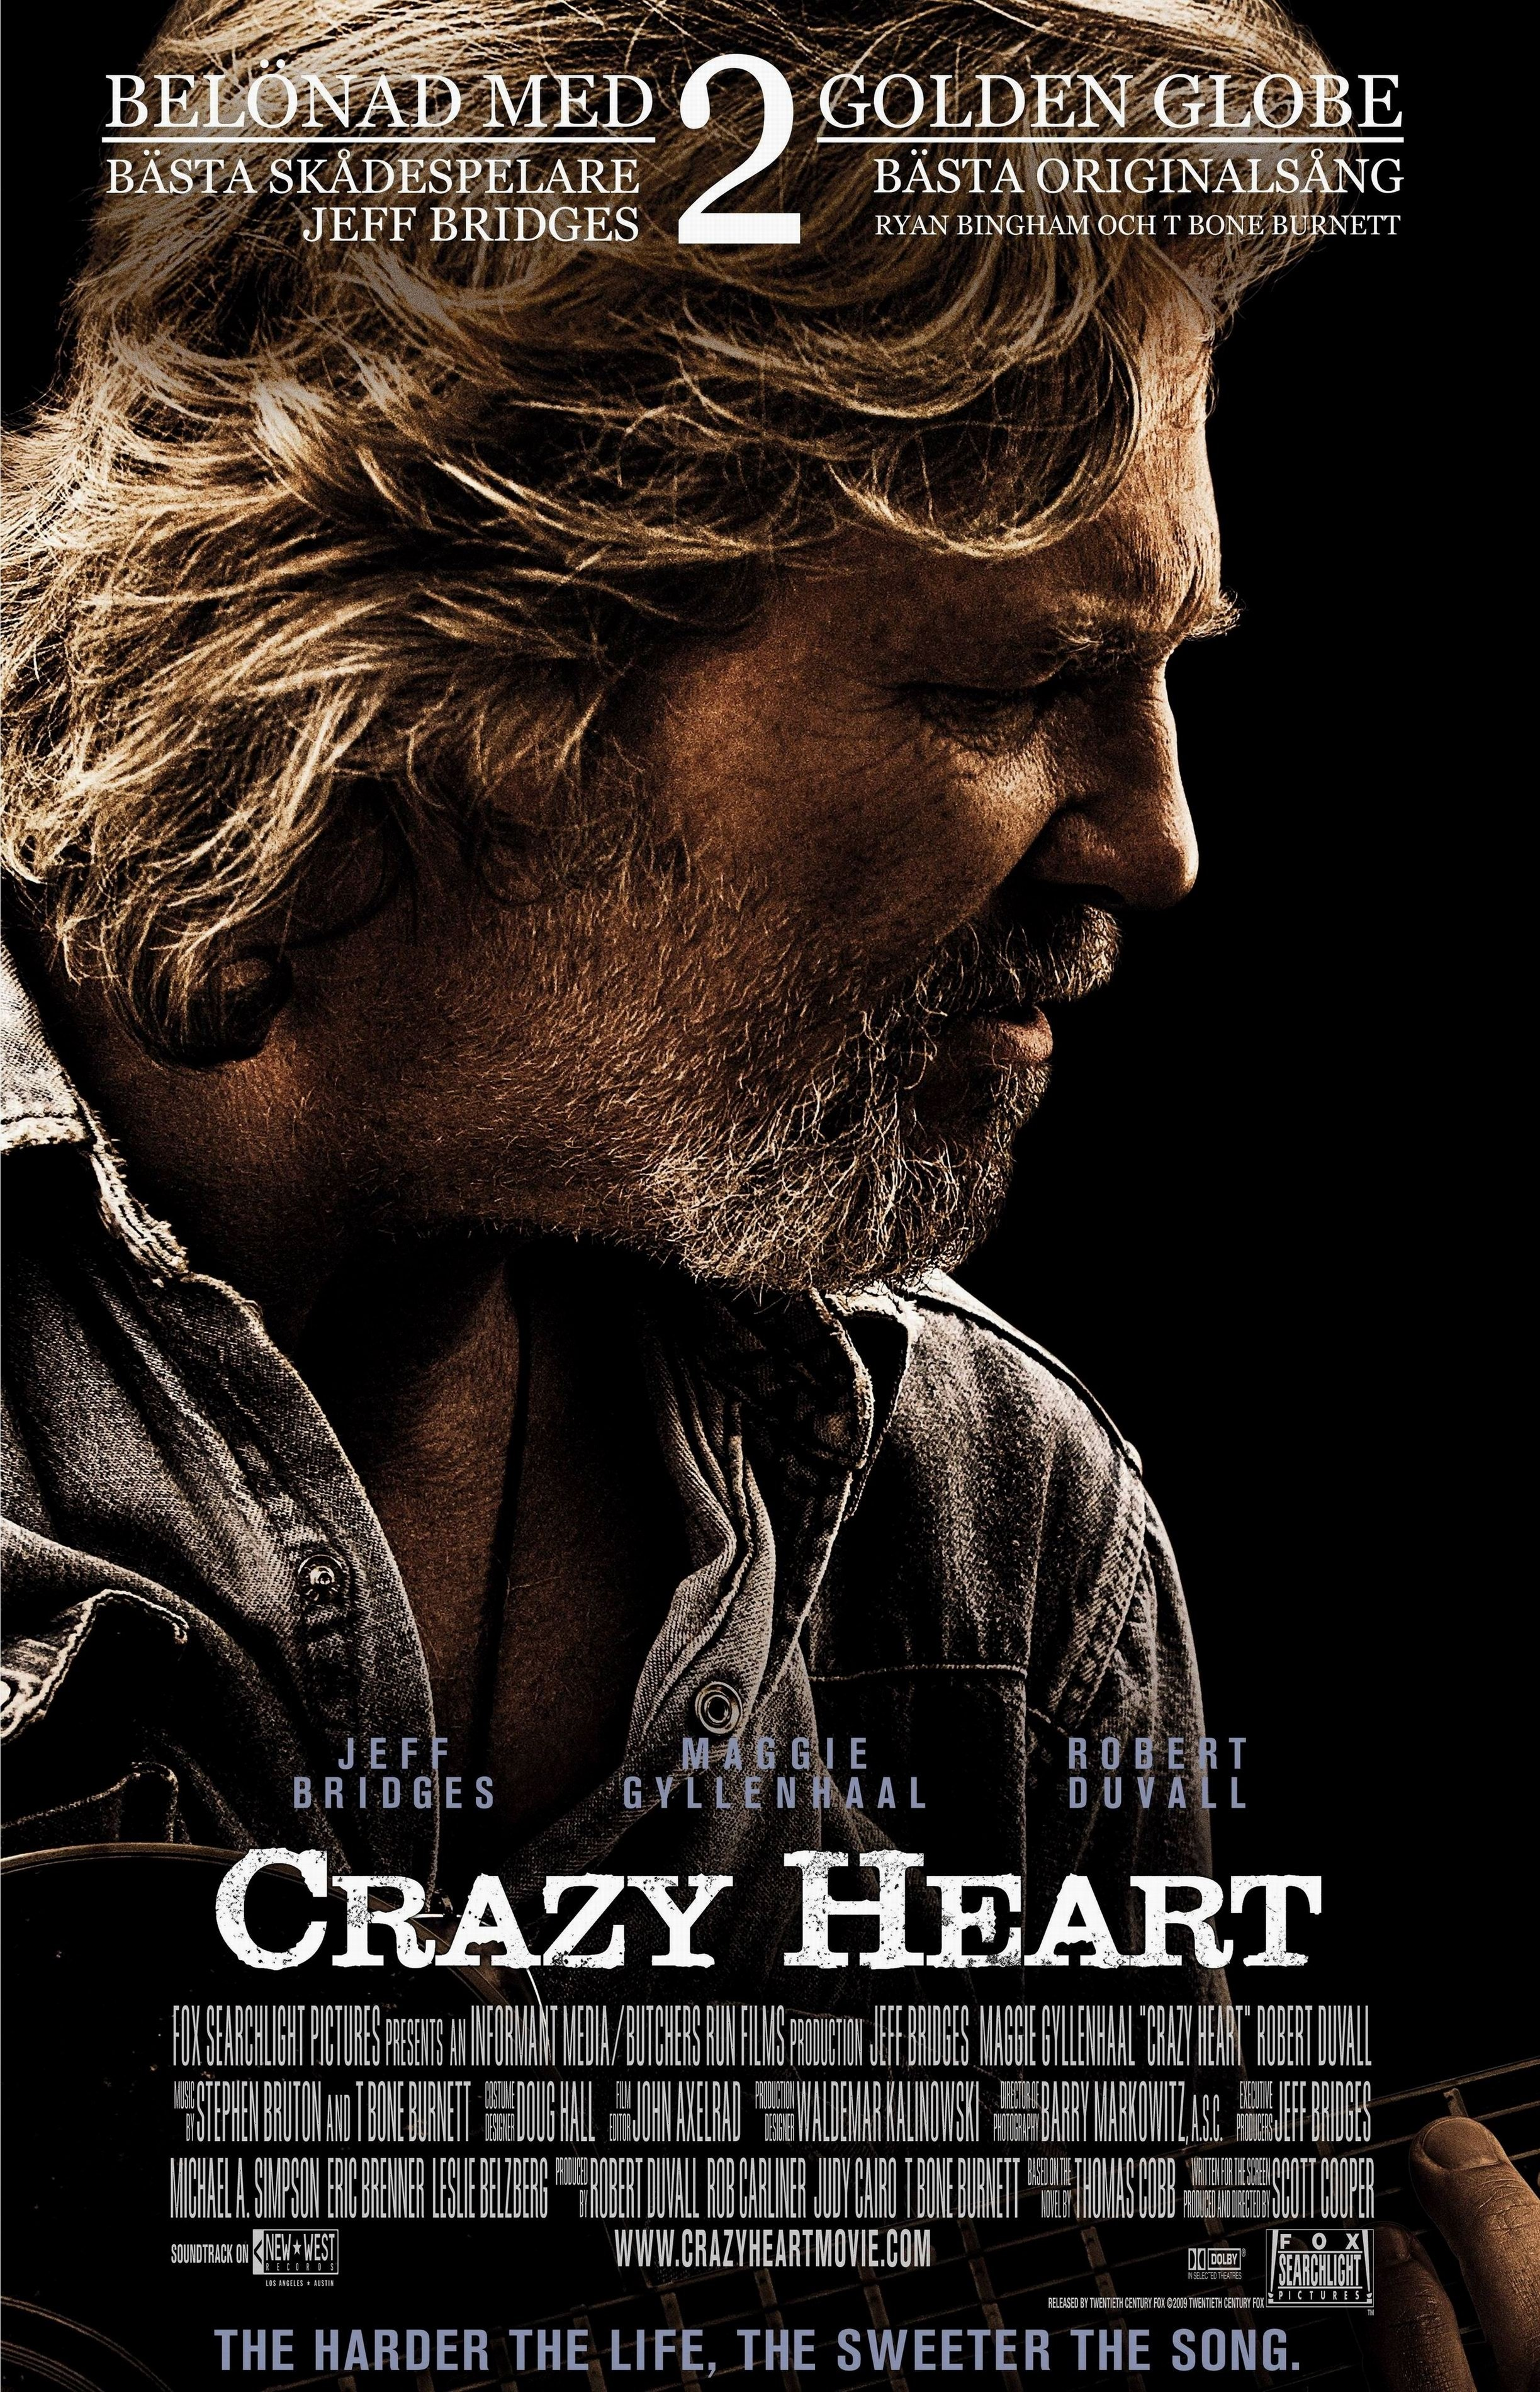 Where is crazy heart movie playing